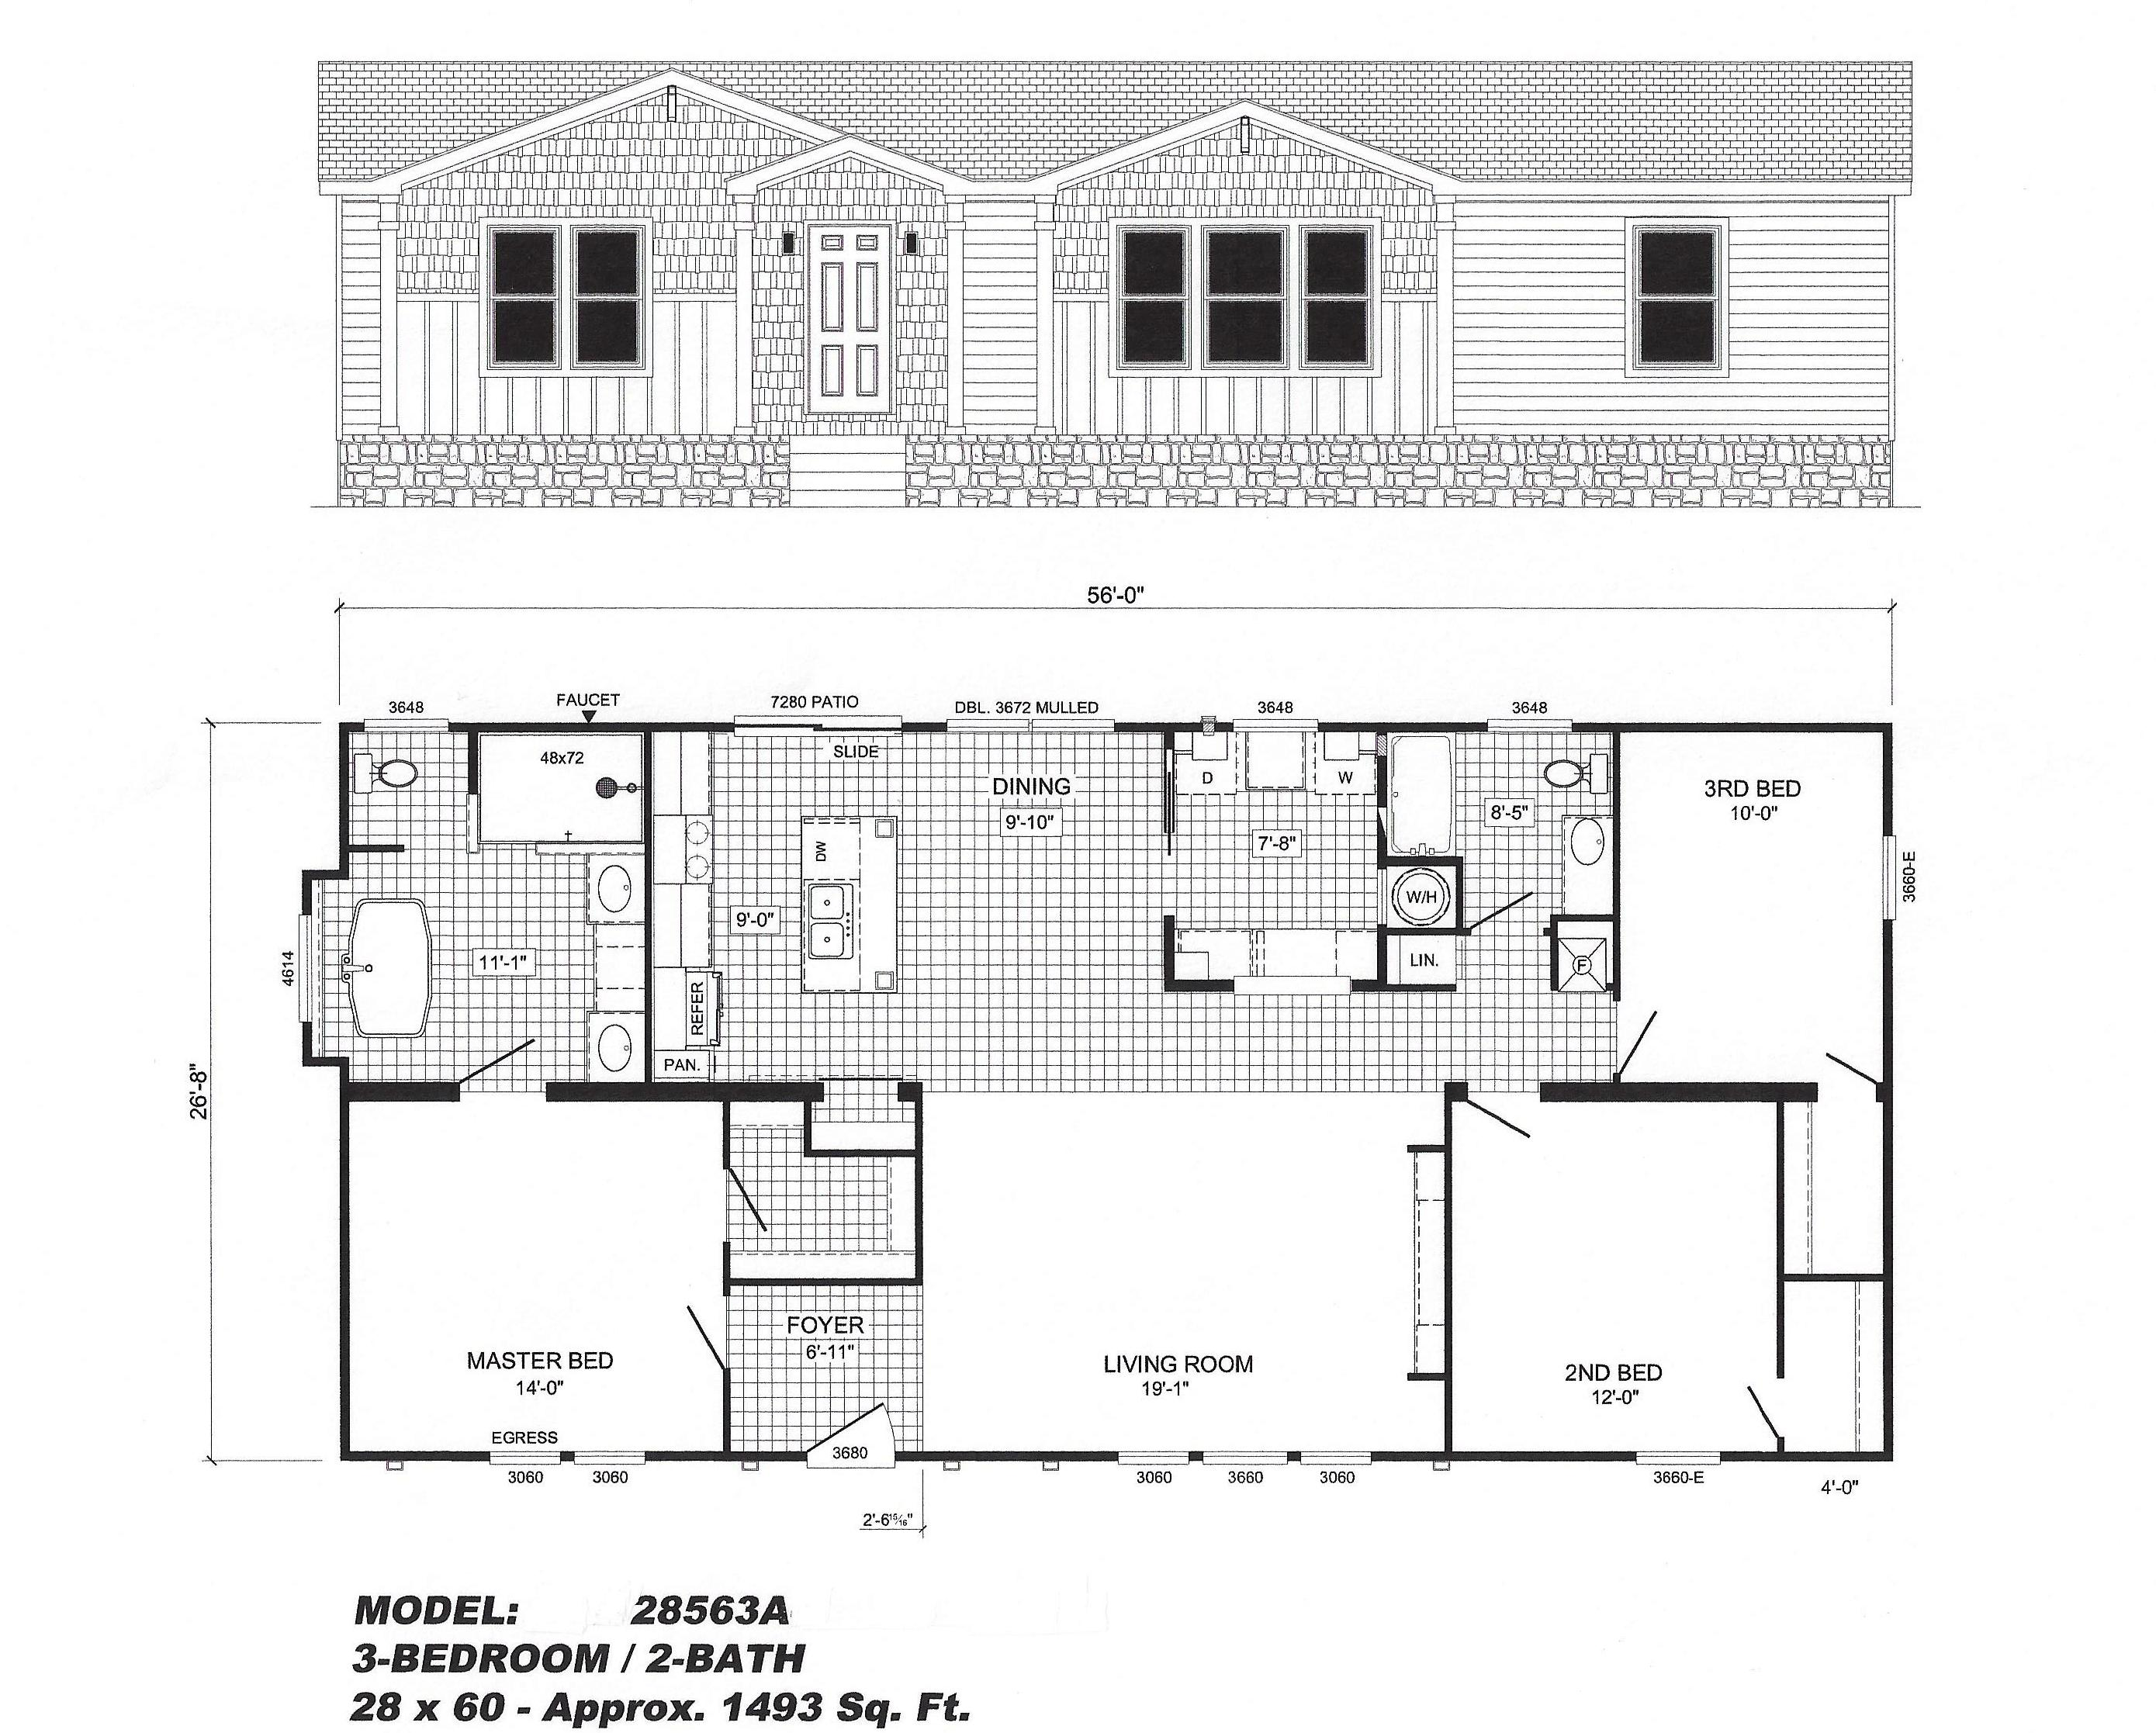 3 bedroom floor plan b 2856 pat hawks homes for Home builders floor plans